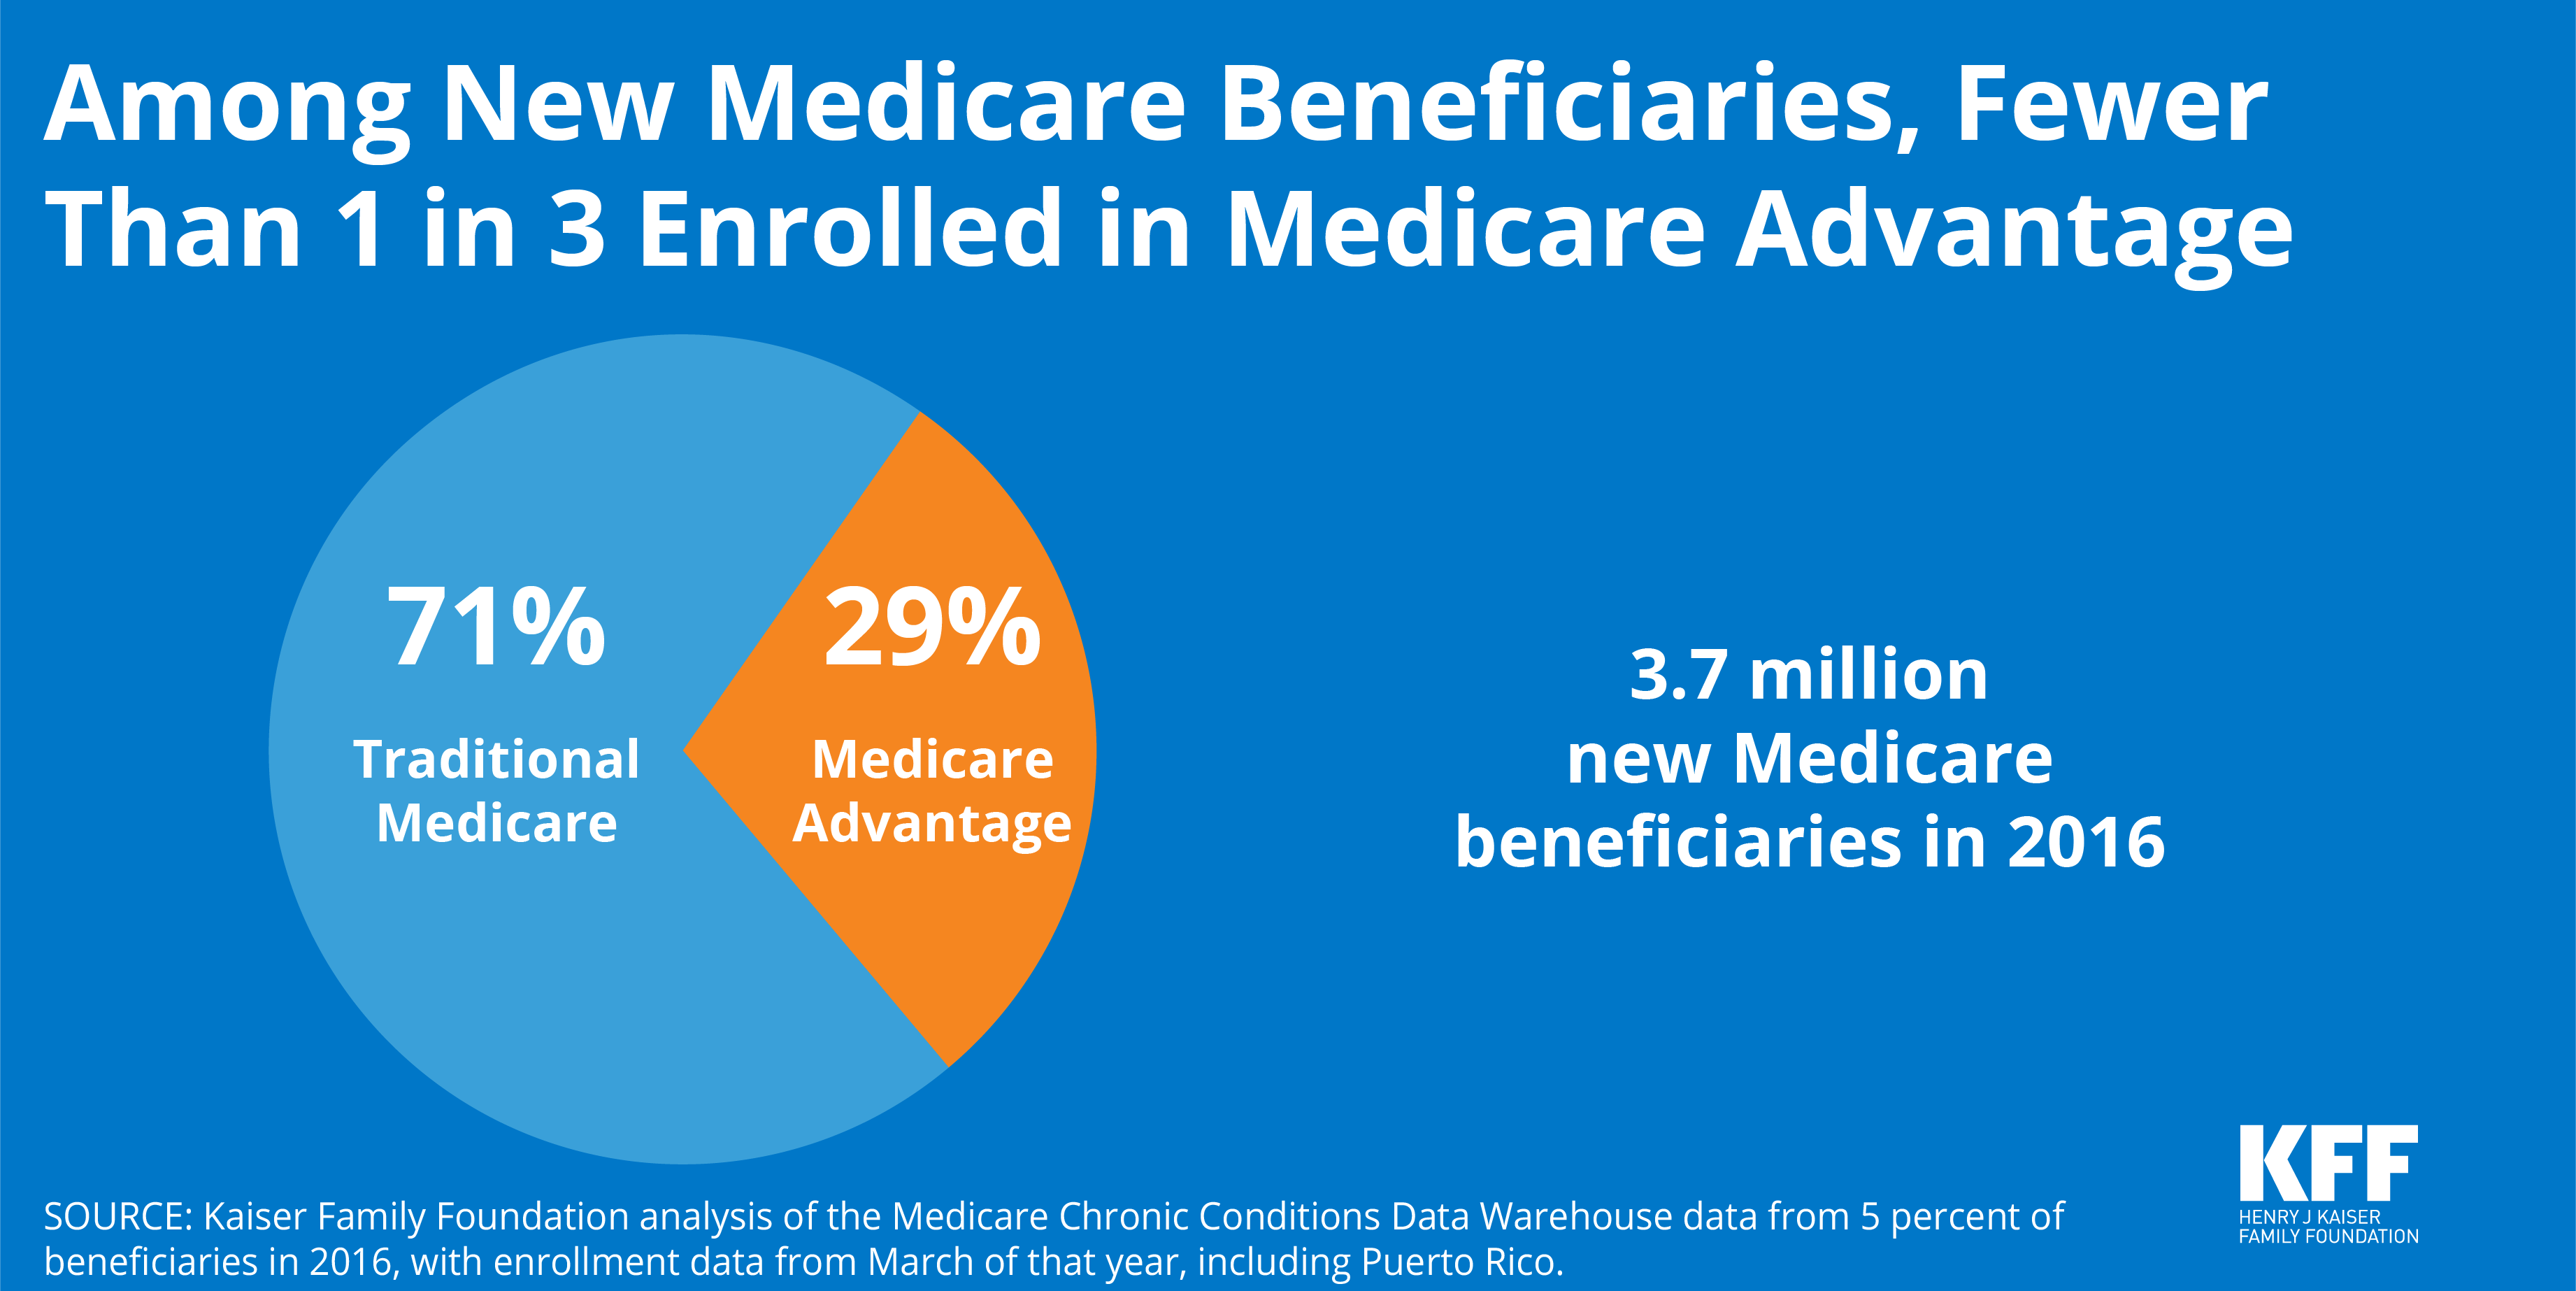 What Percent of New Medicare